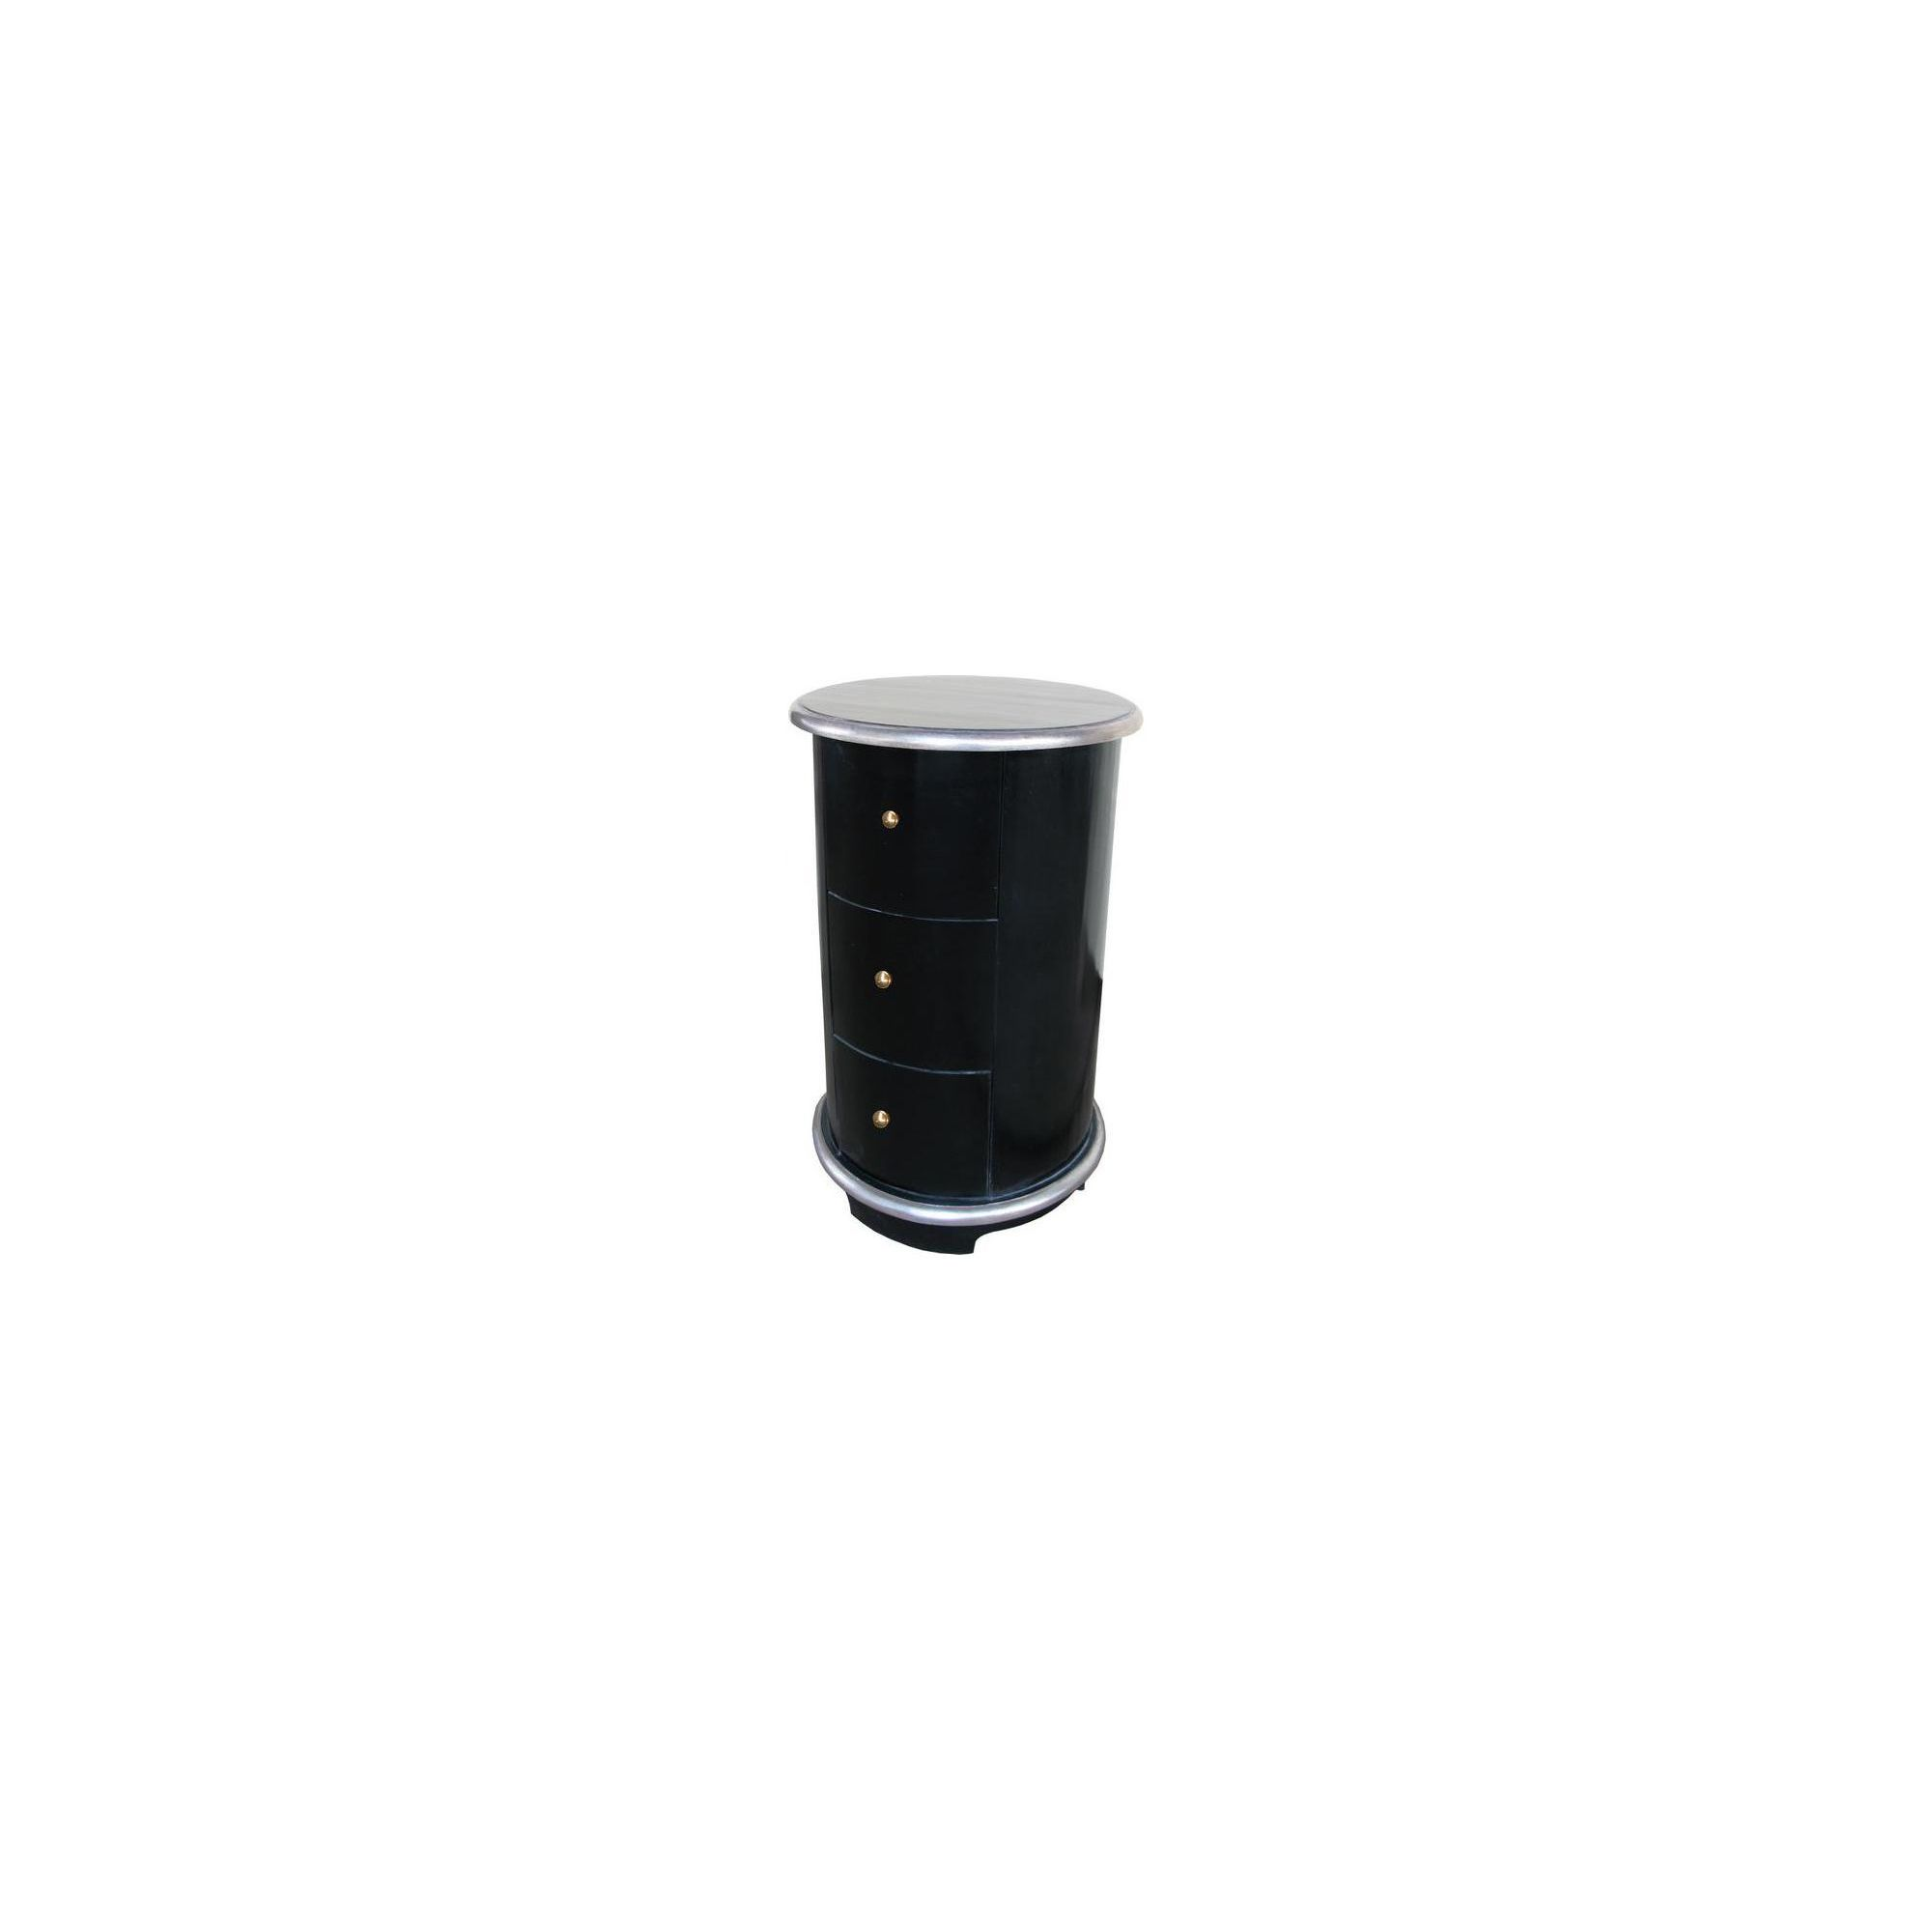 Lock stock and barrel Mahogany Round Bedside Table in Mahogany - Black at Tescos Direct